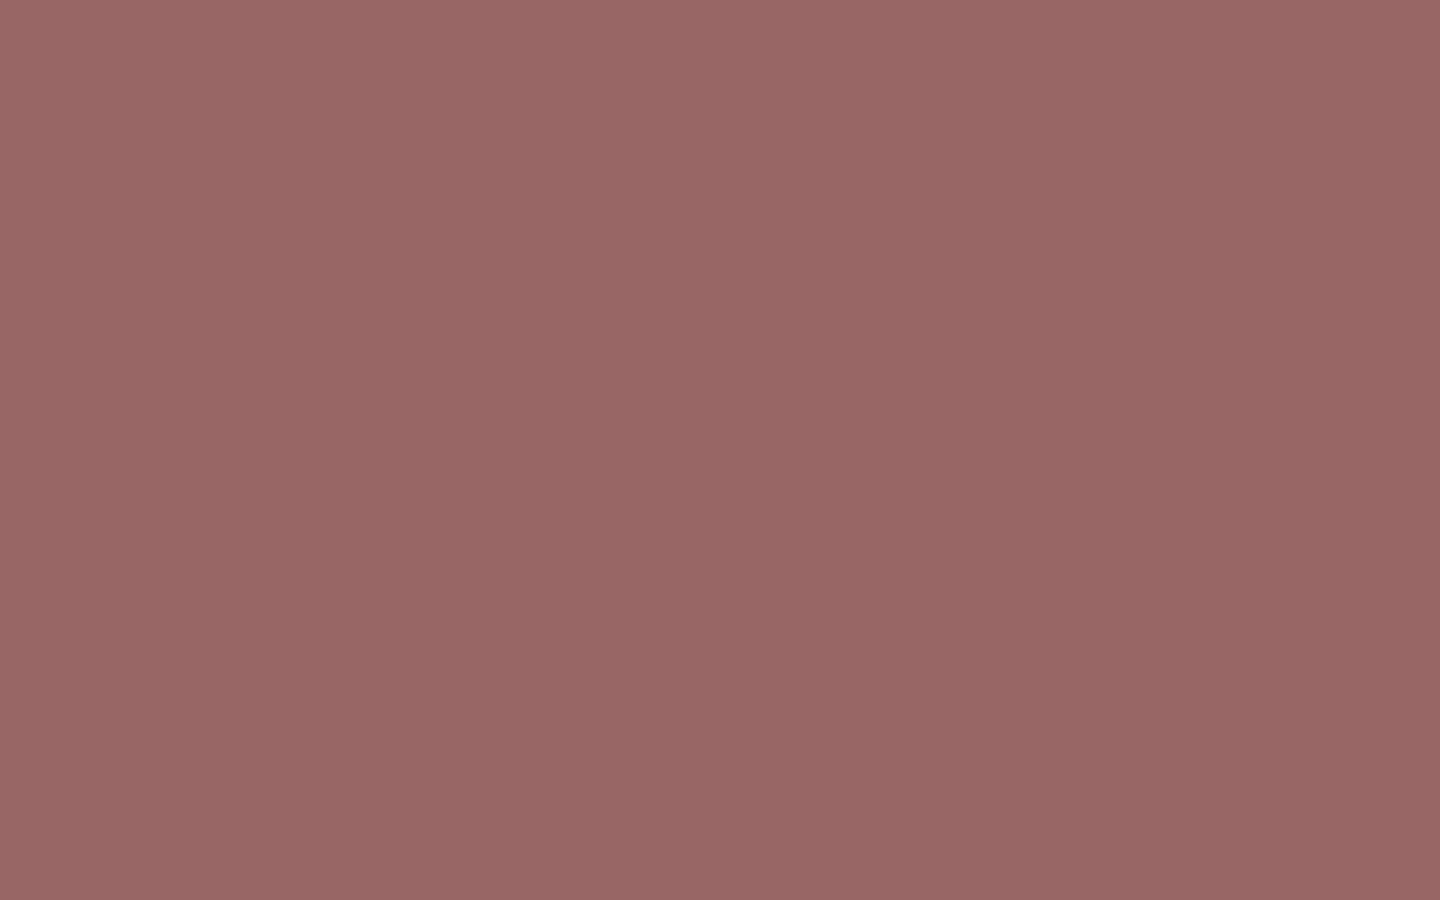 1440x900 Copper Rose Solid Color Background